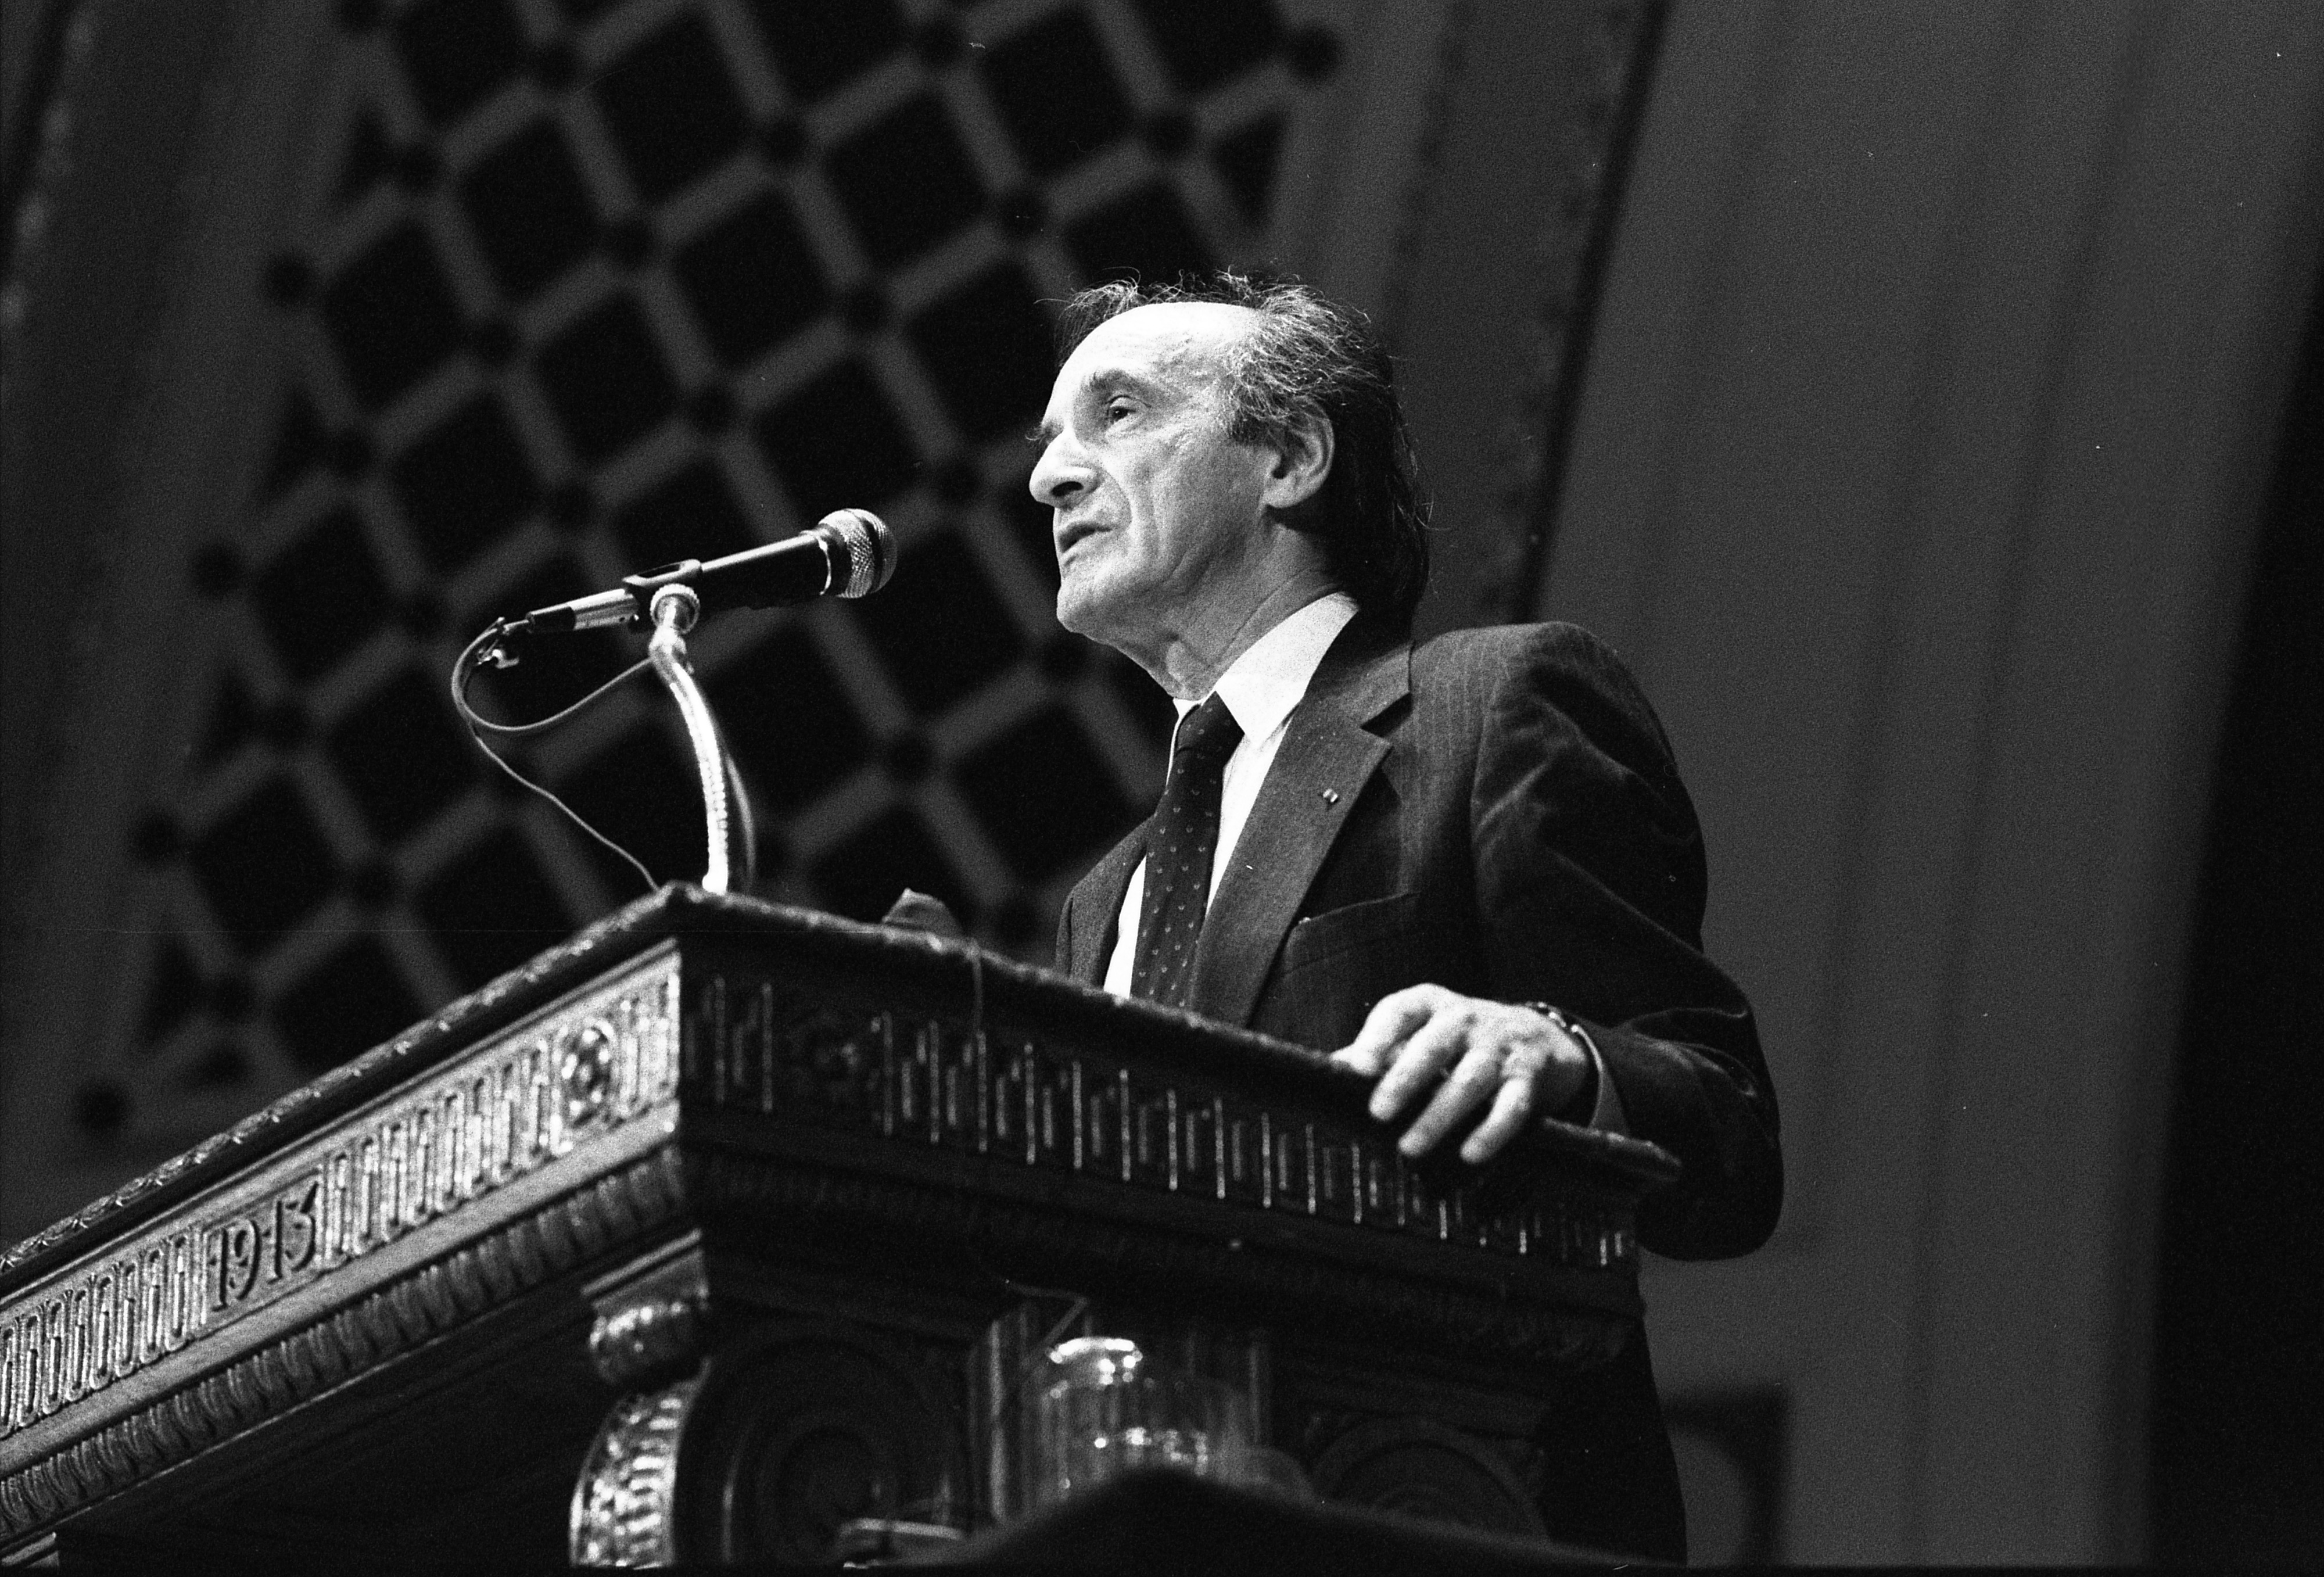 Elie Wiesel Speaking At Hill Auditorium, September 26, 1990 image